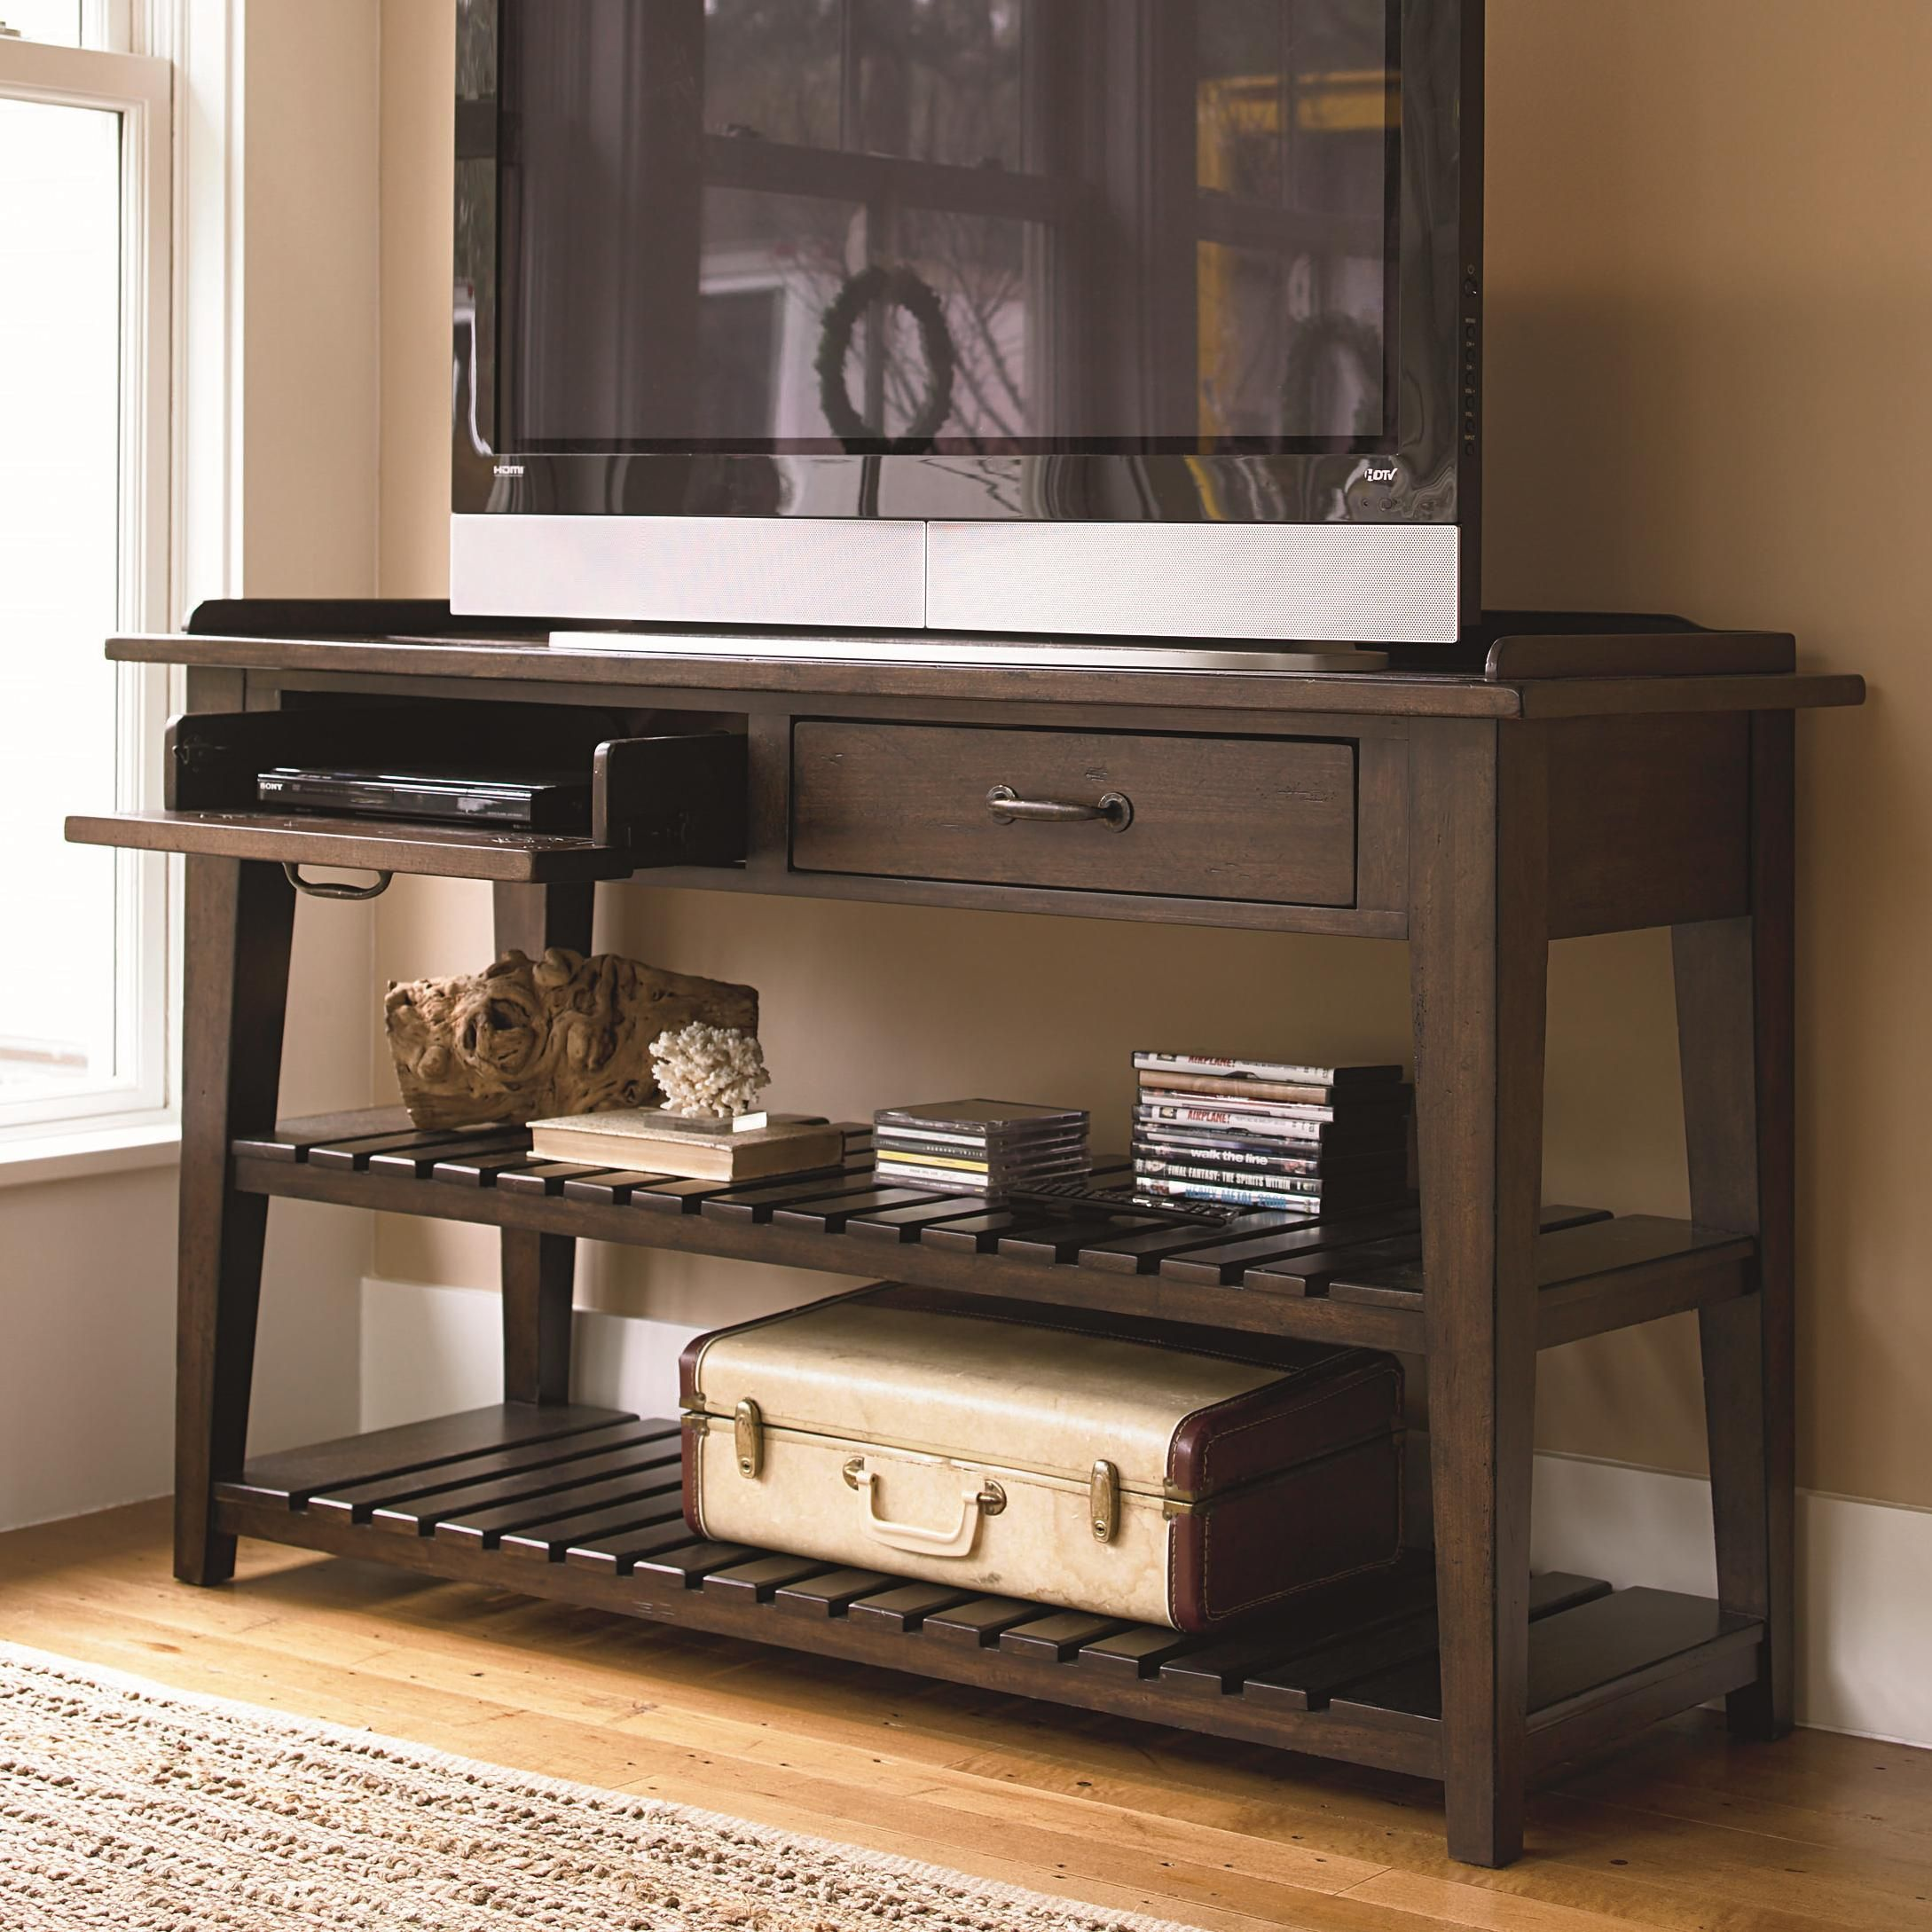 TV ConsoleServing Table Console Table Pinterest Home - Home tv stand furniture designs